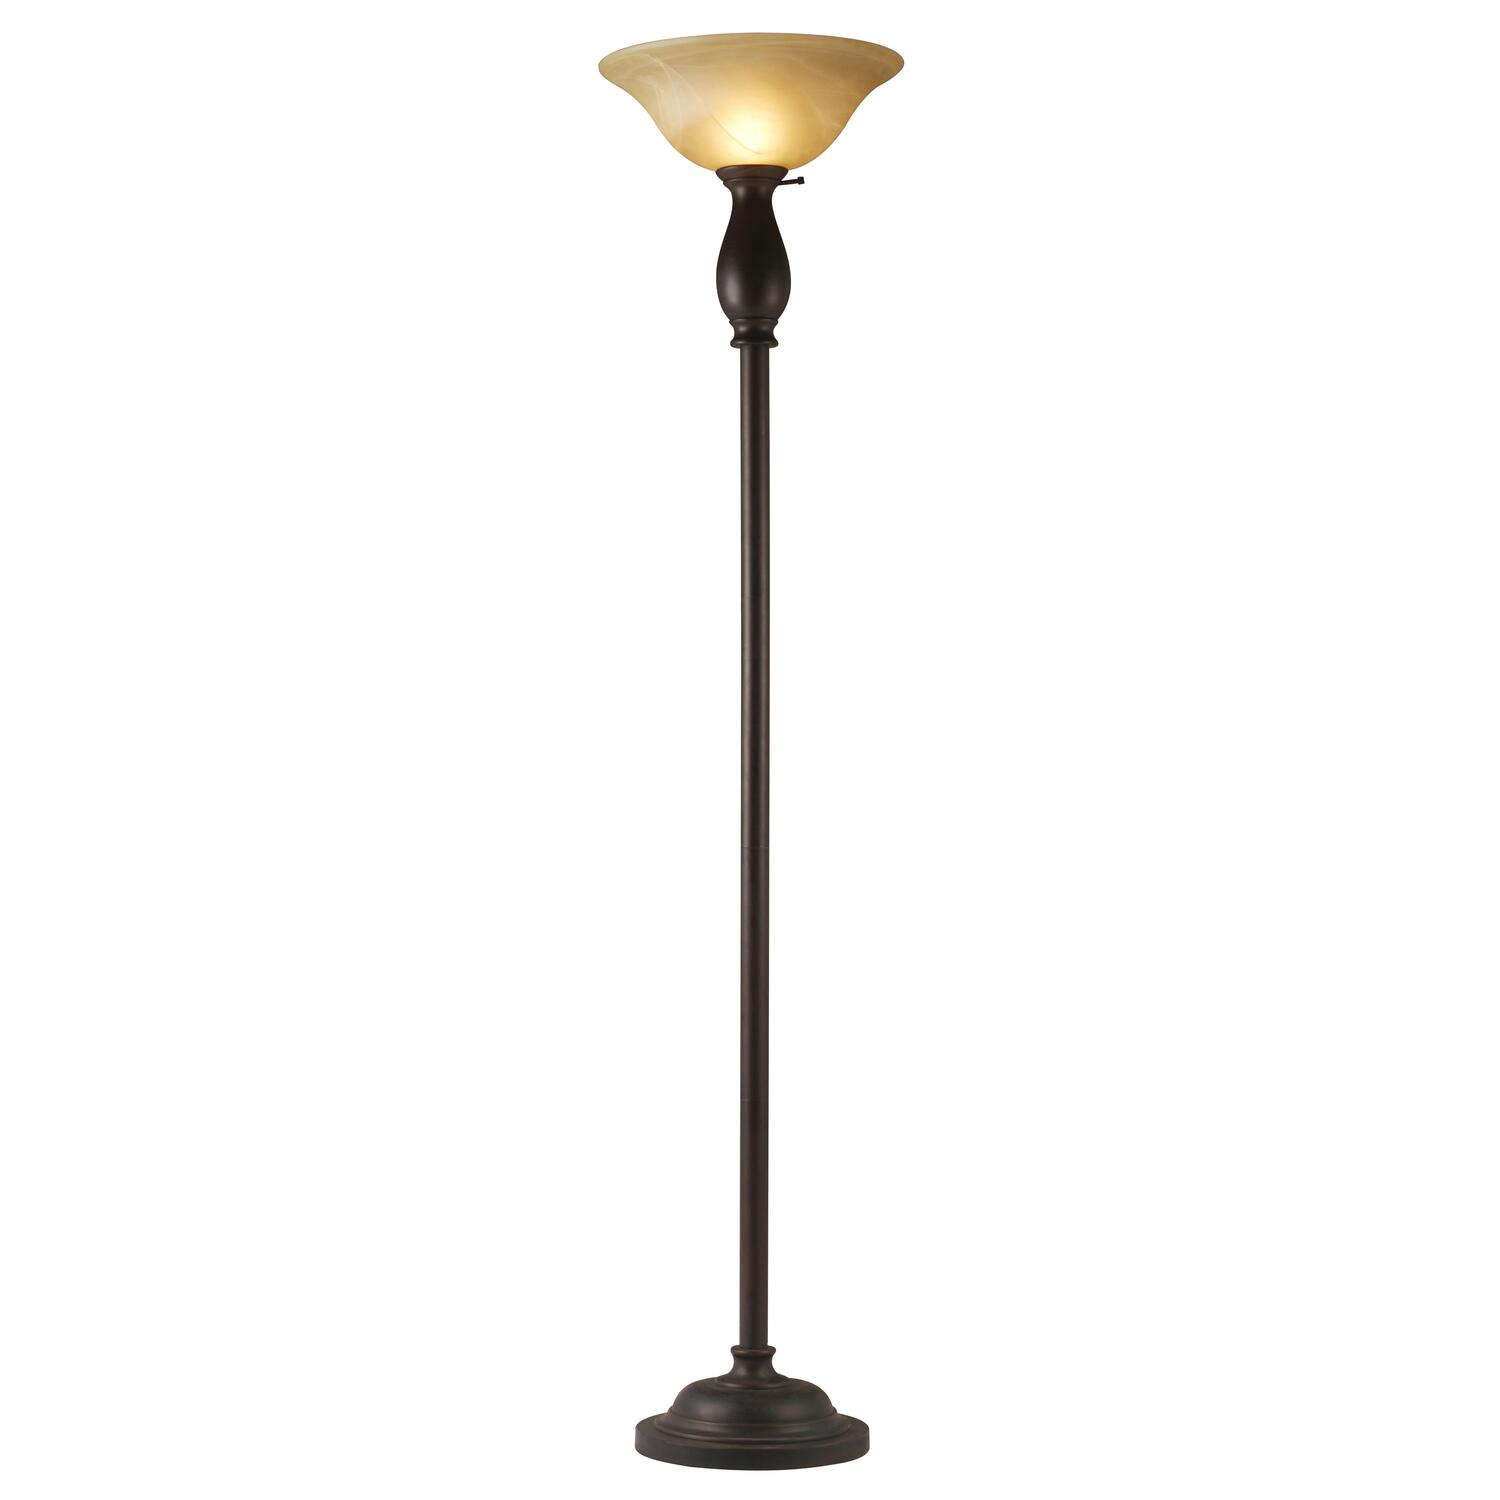 home source stained glass floor lamp by oj commerce. Black Bedroom Furniture Sets. Home Design Ideas